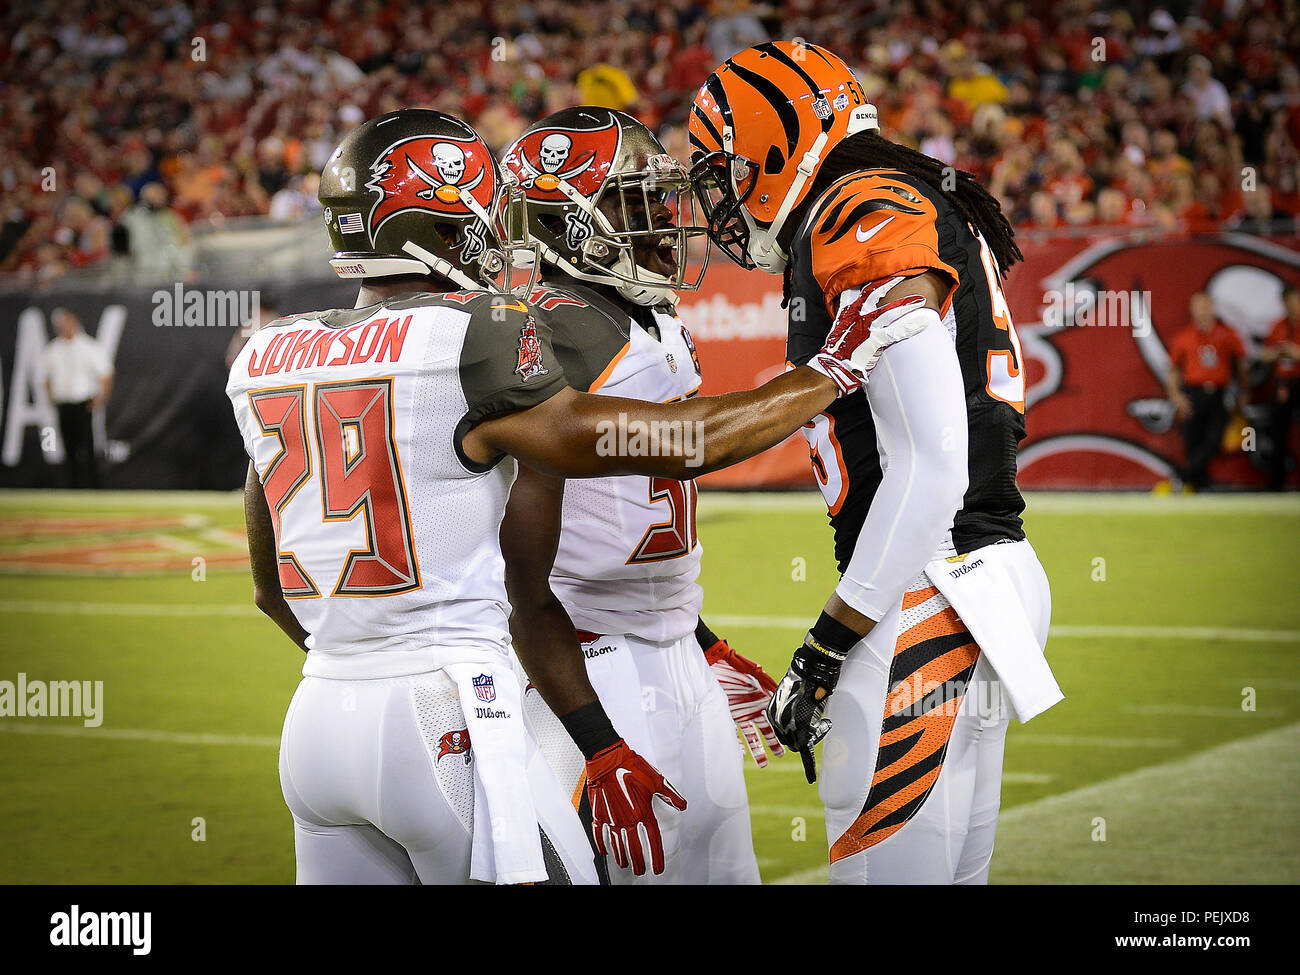 Tampa Bay Buccaneers cornerback Leonard Johnson and safety Keith Tandy confront Cincinnati Bengals linebacker Emmanuel Lamur during an NFL preseason Buccaneers vs. Bengals football game, Aug. 24, 2015, in Tampa, Fla. The game featured a salute to military service, which included a U.S. Special Operations Command Para-Commandos parachute demonstration and a U.S. Coast Guard HC-130J Hercules fly-over. (U.S. Air Force photo by Tech. Sgt. Brandon Shapiro) Stock Photo